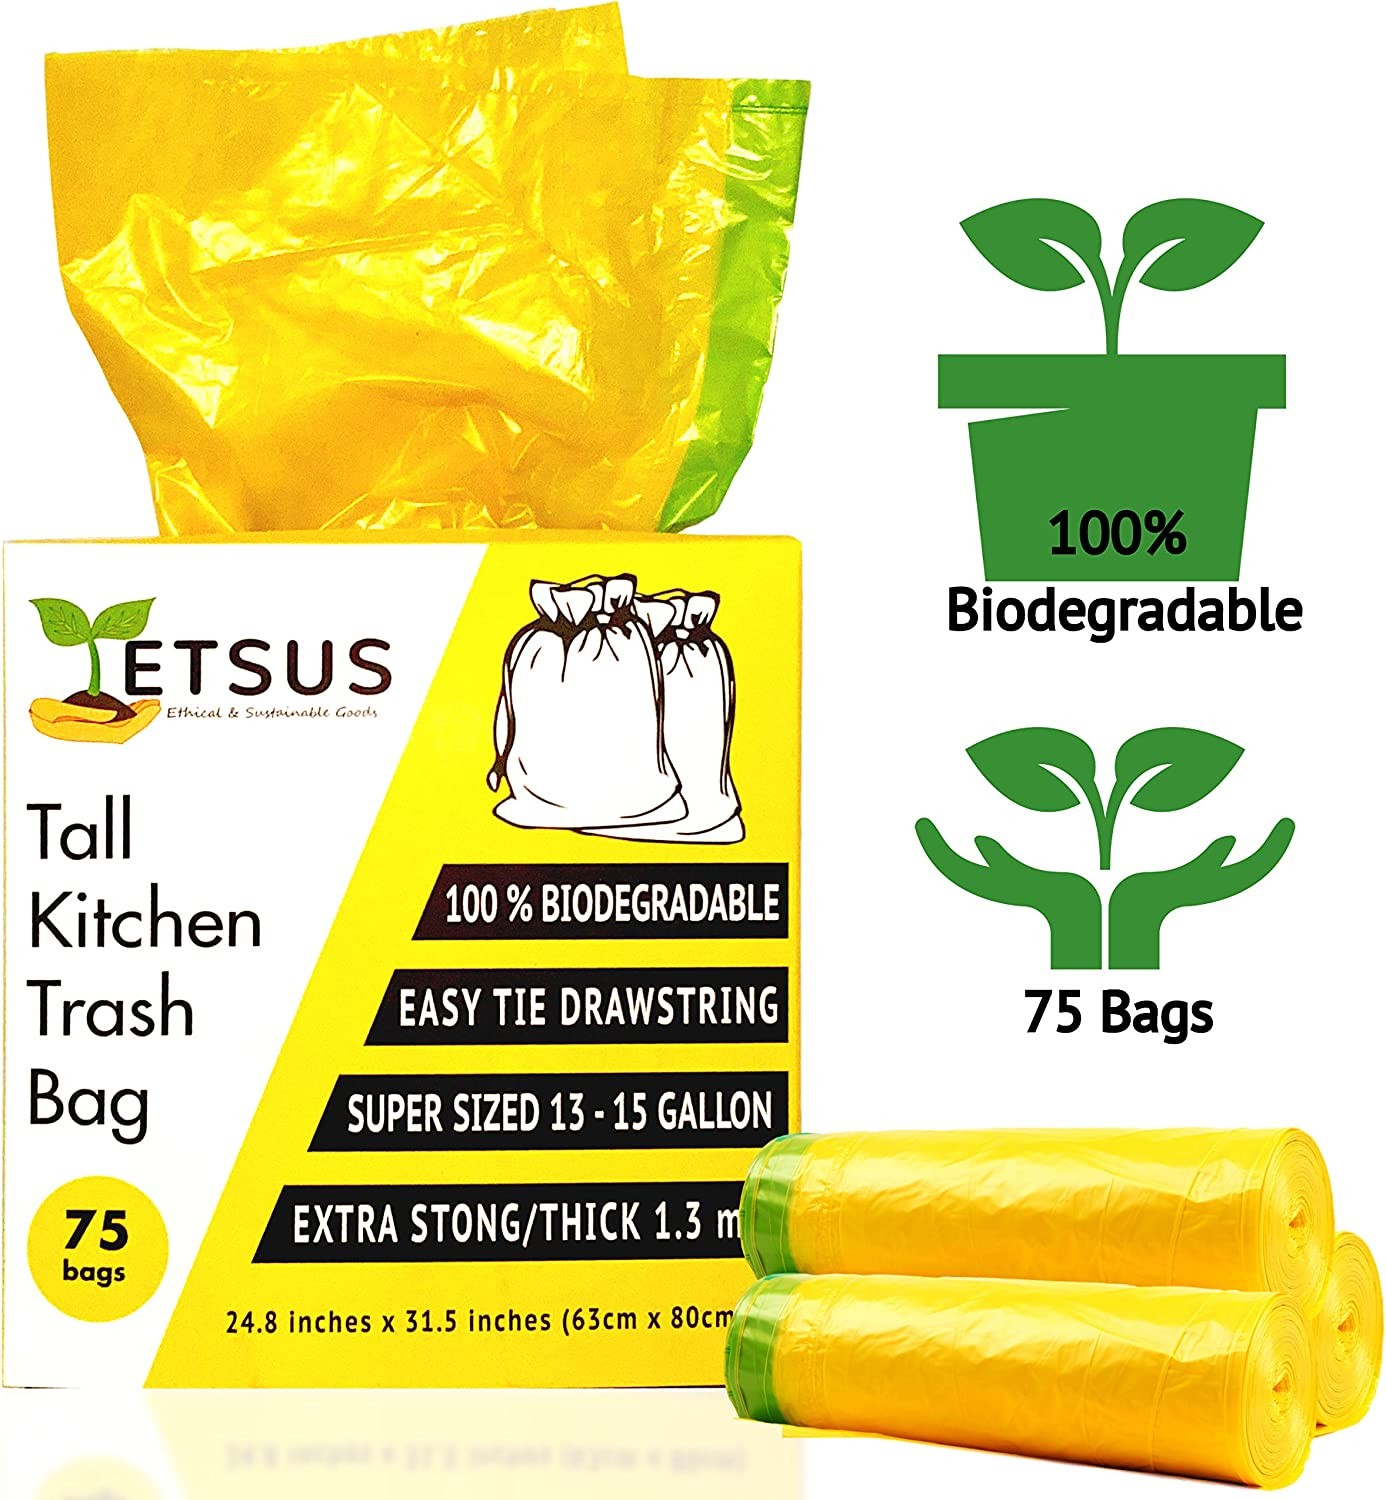 ETSUS Large Biodegradable Trash Bags 75 Pieces, Tall Heavy Duty Rubbish Wastebasket Liner Bags, Garbage Bags for Kitchen, Bathroom, Car, Office, 13 to 15 Gallon